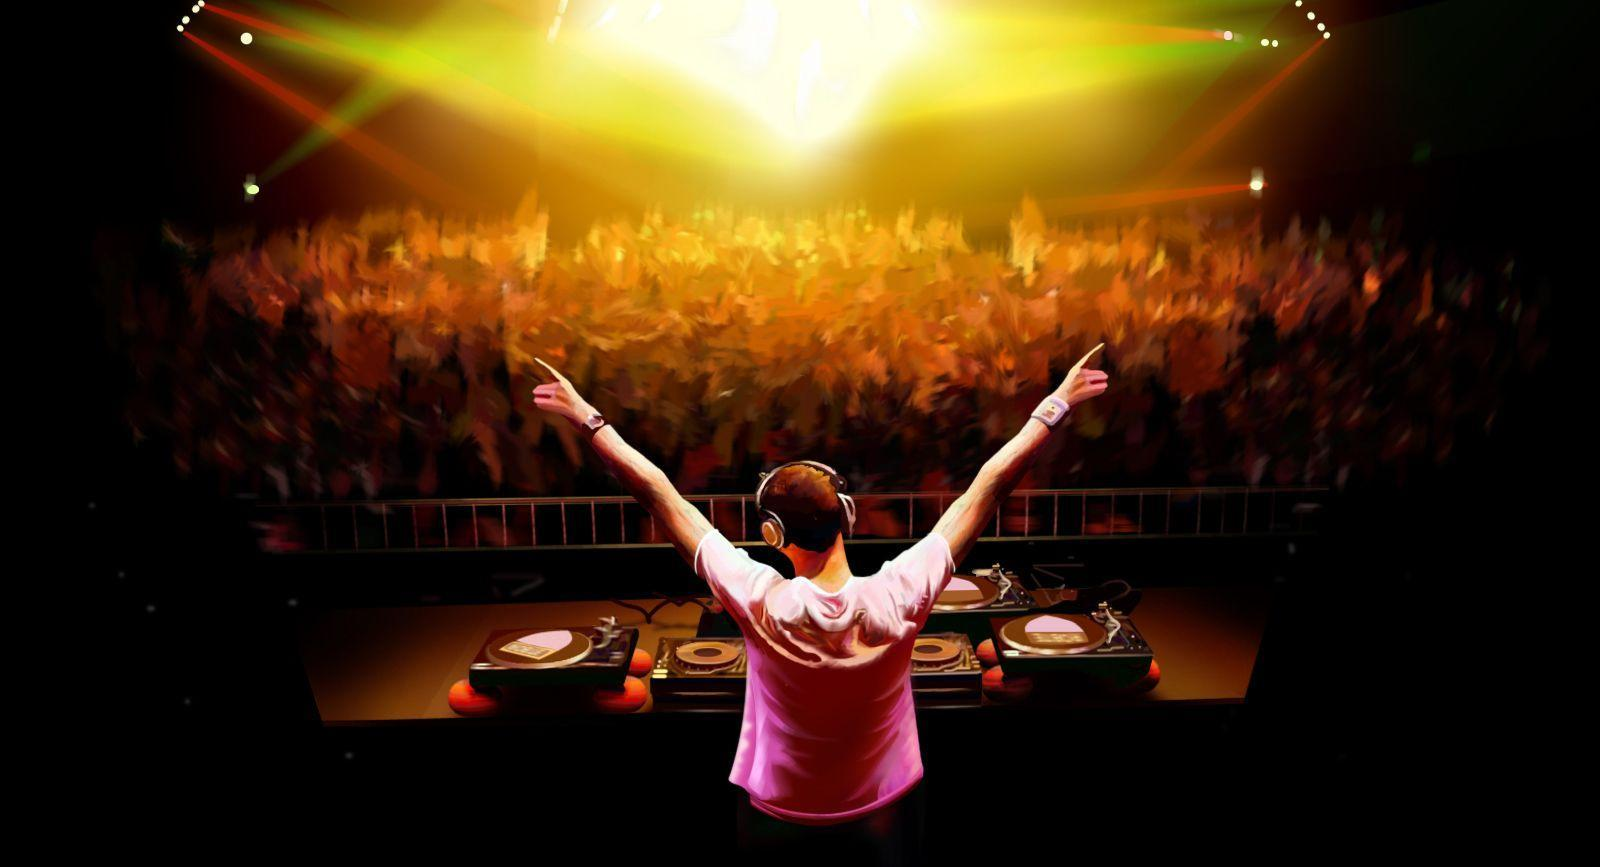 DJ Computer Wallpapers, Desktop Backgrounds 1600x867 Id: 237131